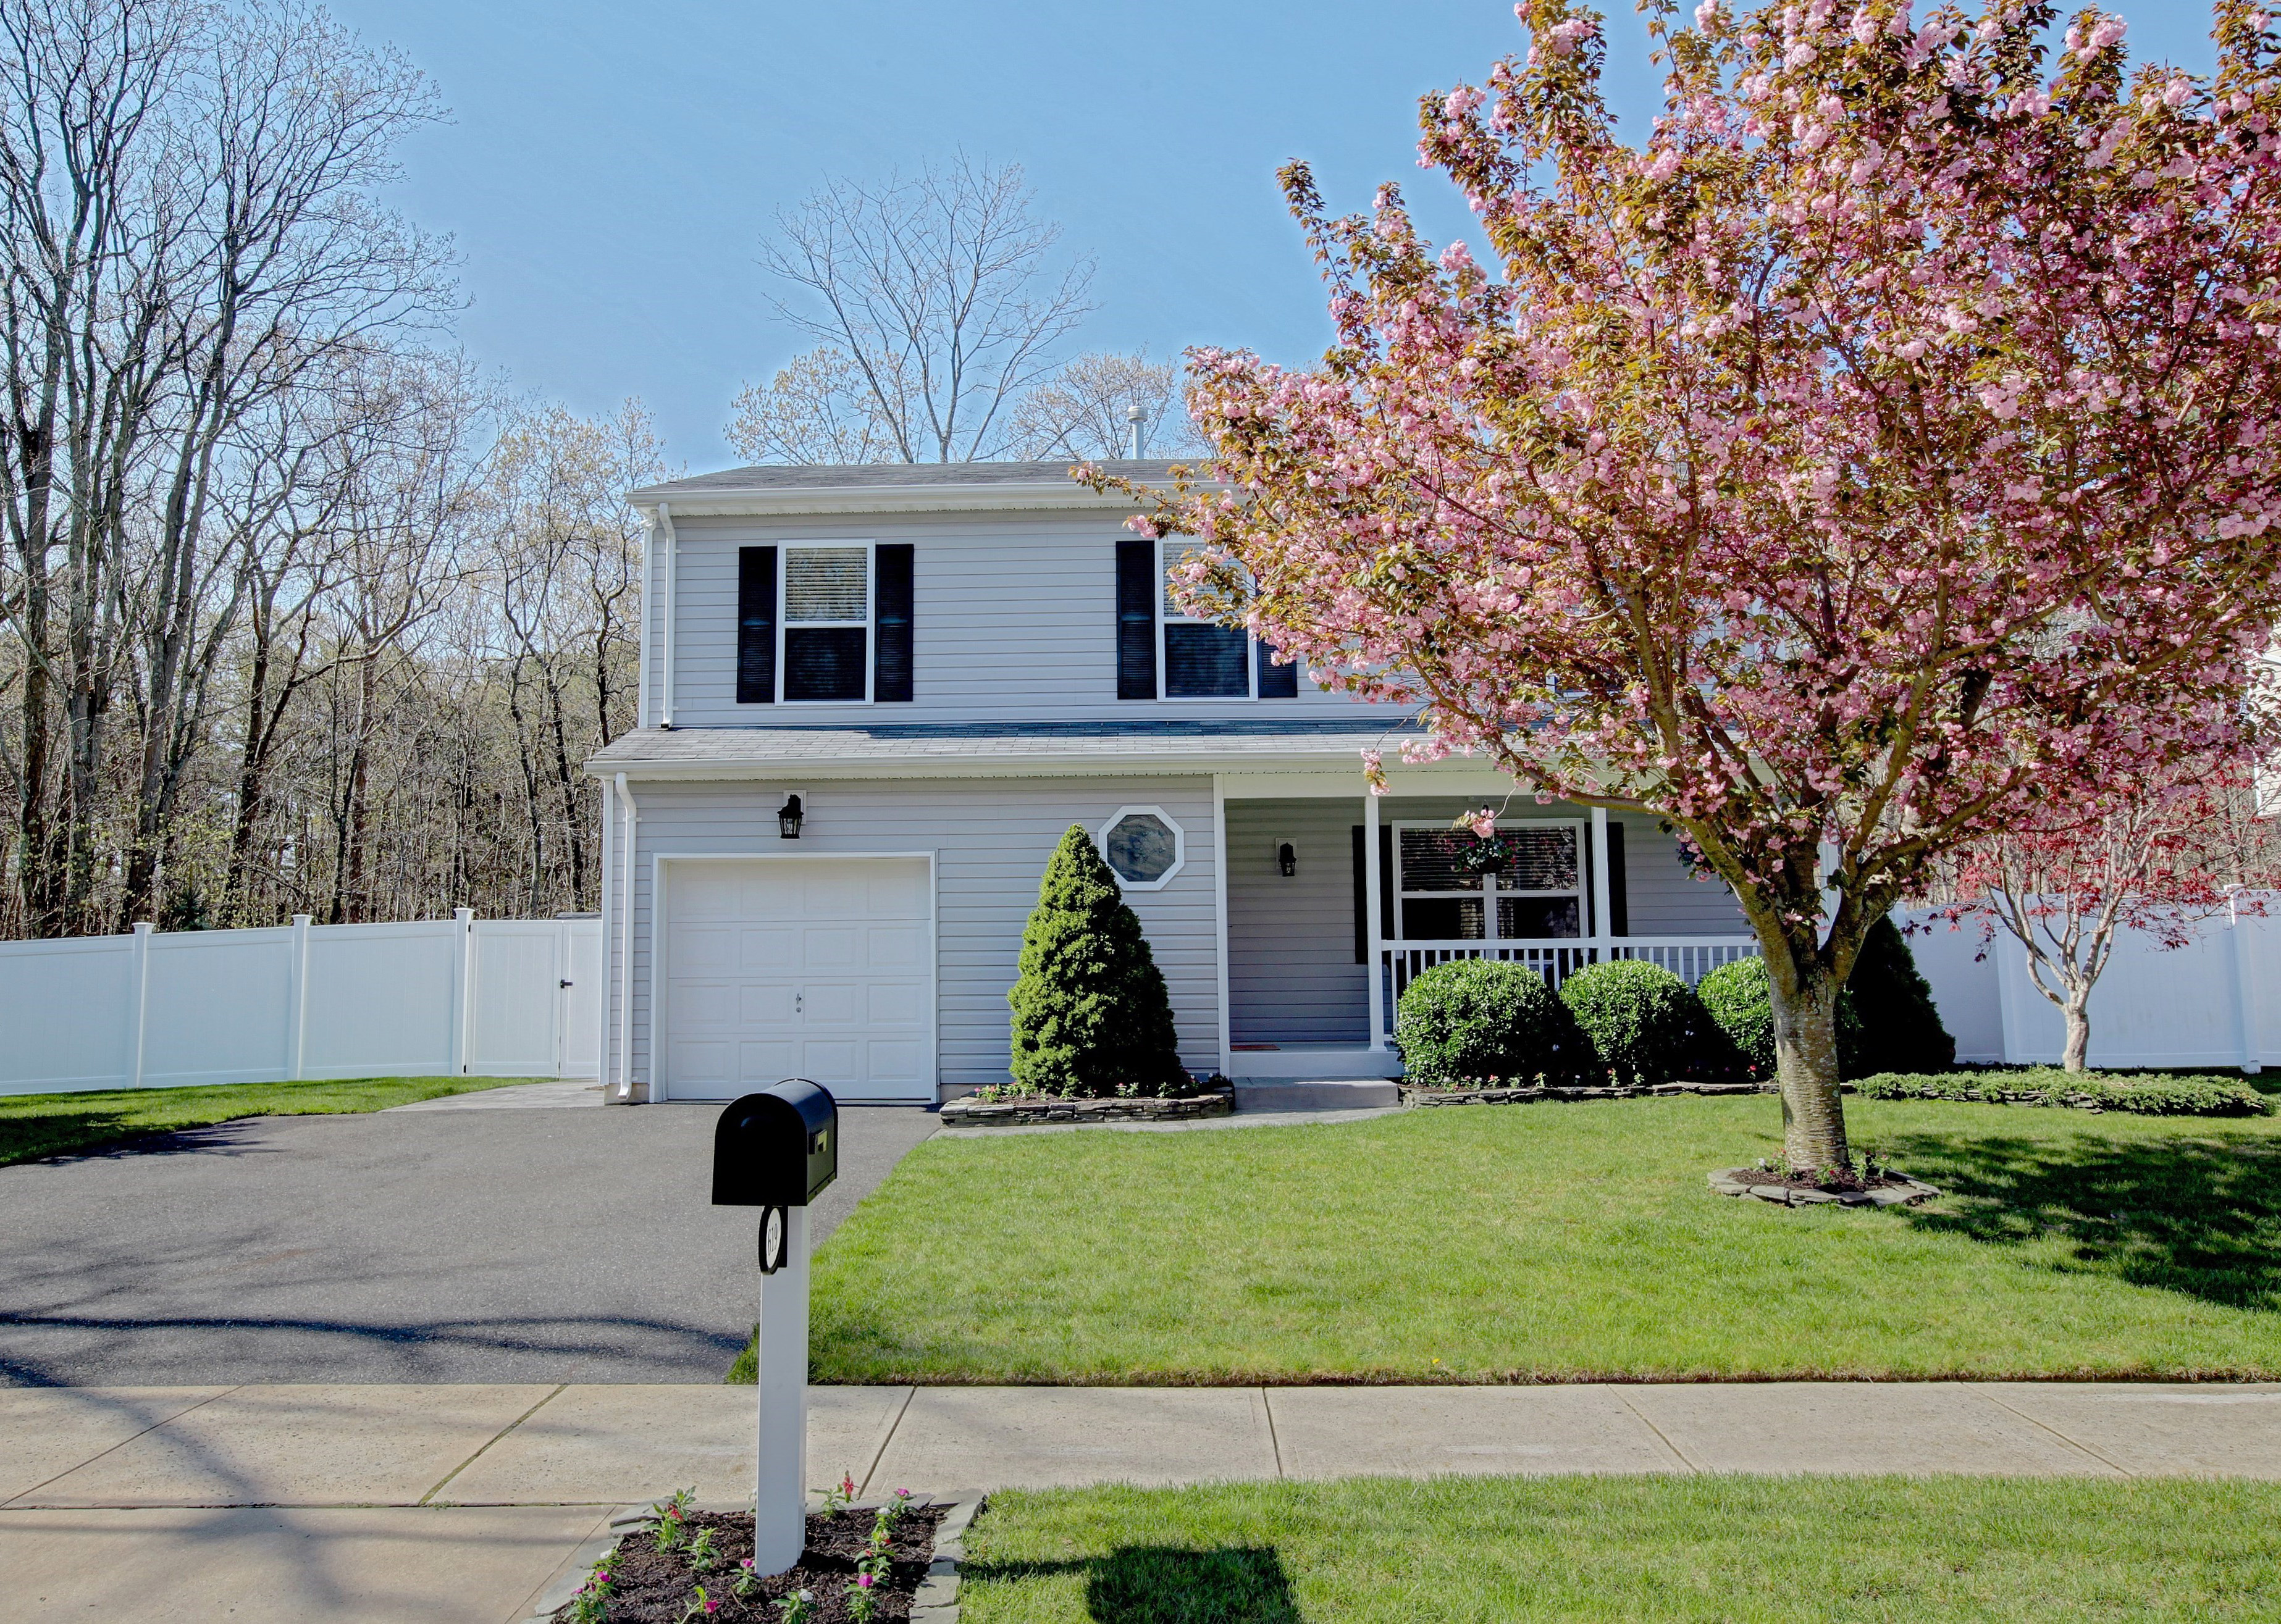 Single Family Home for Sale at 619 Ivanhoe Rd. Brick, New Jersey, 08723 United States